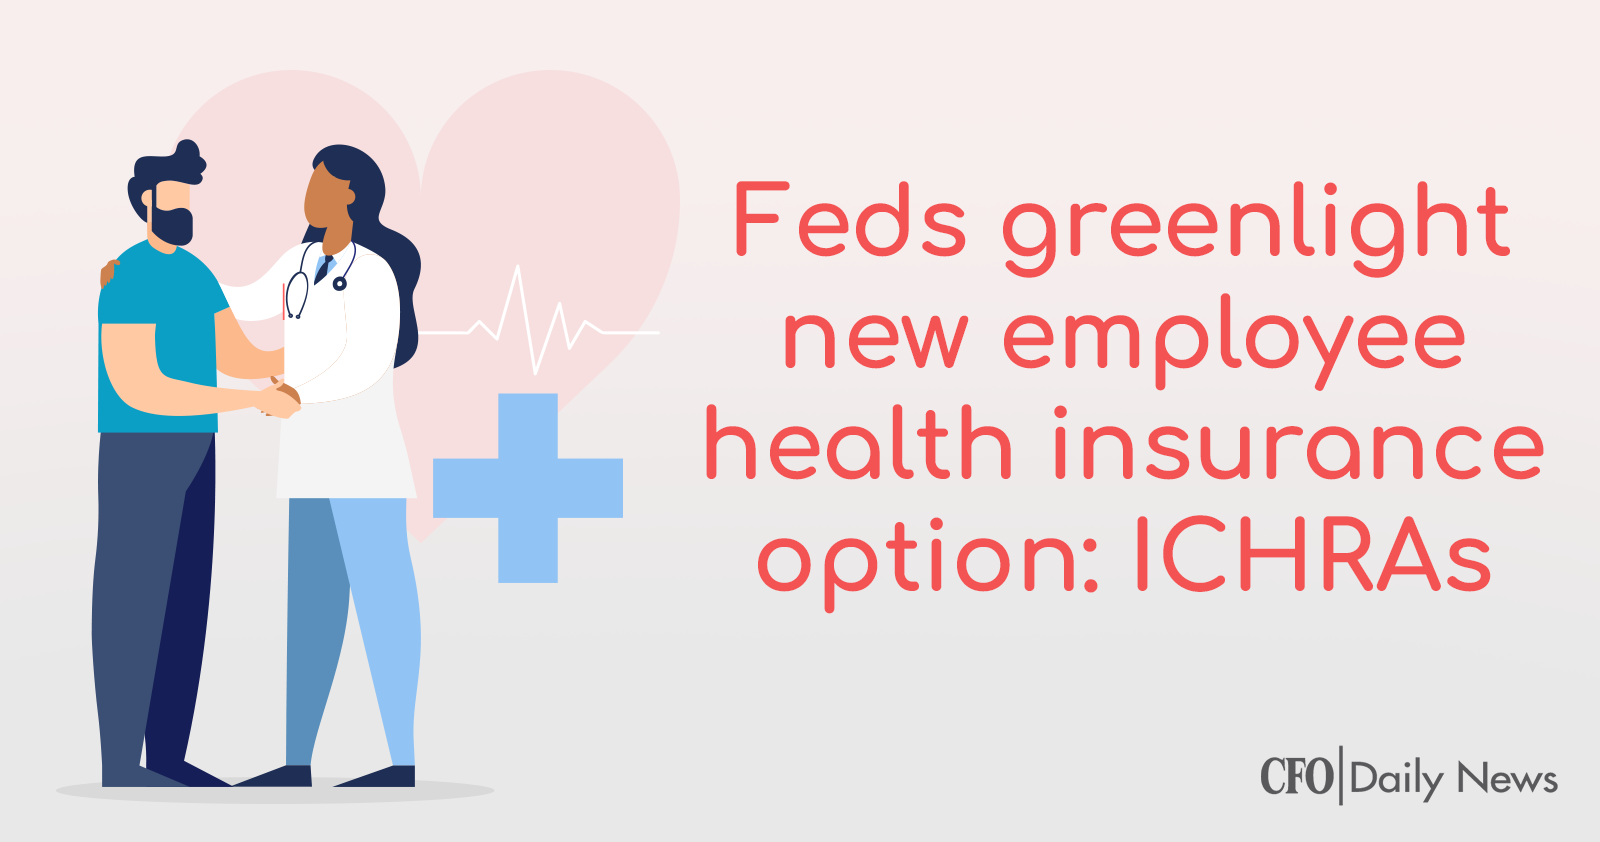 Feds greenlight new employee health insurance option ...